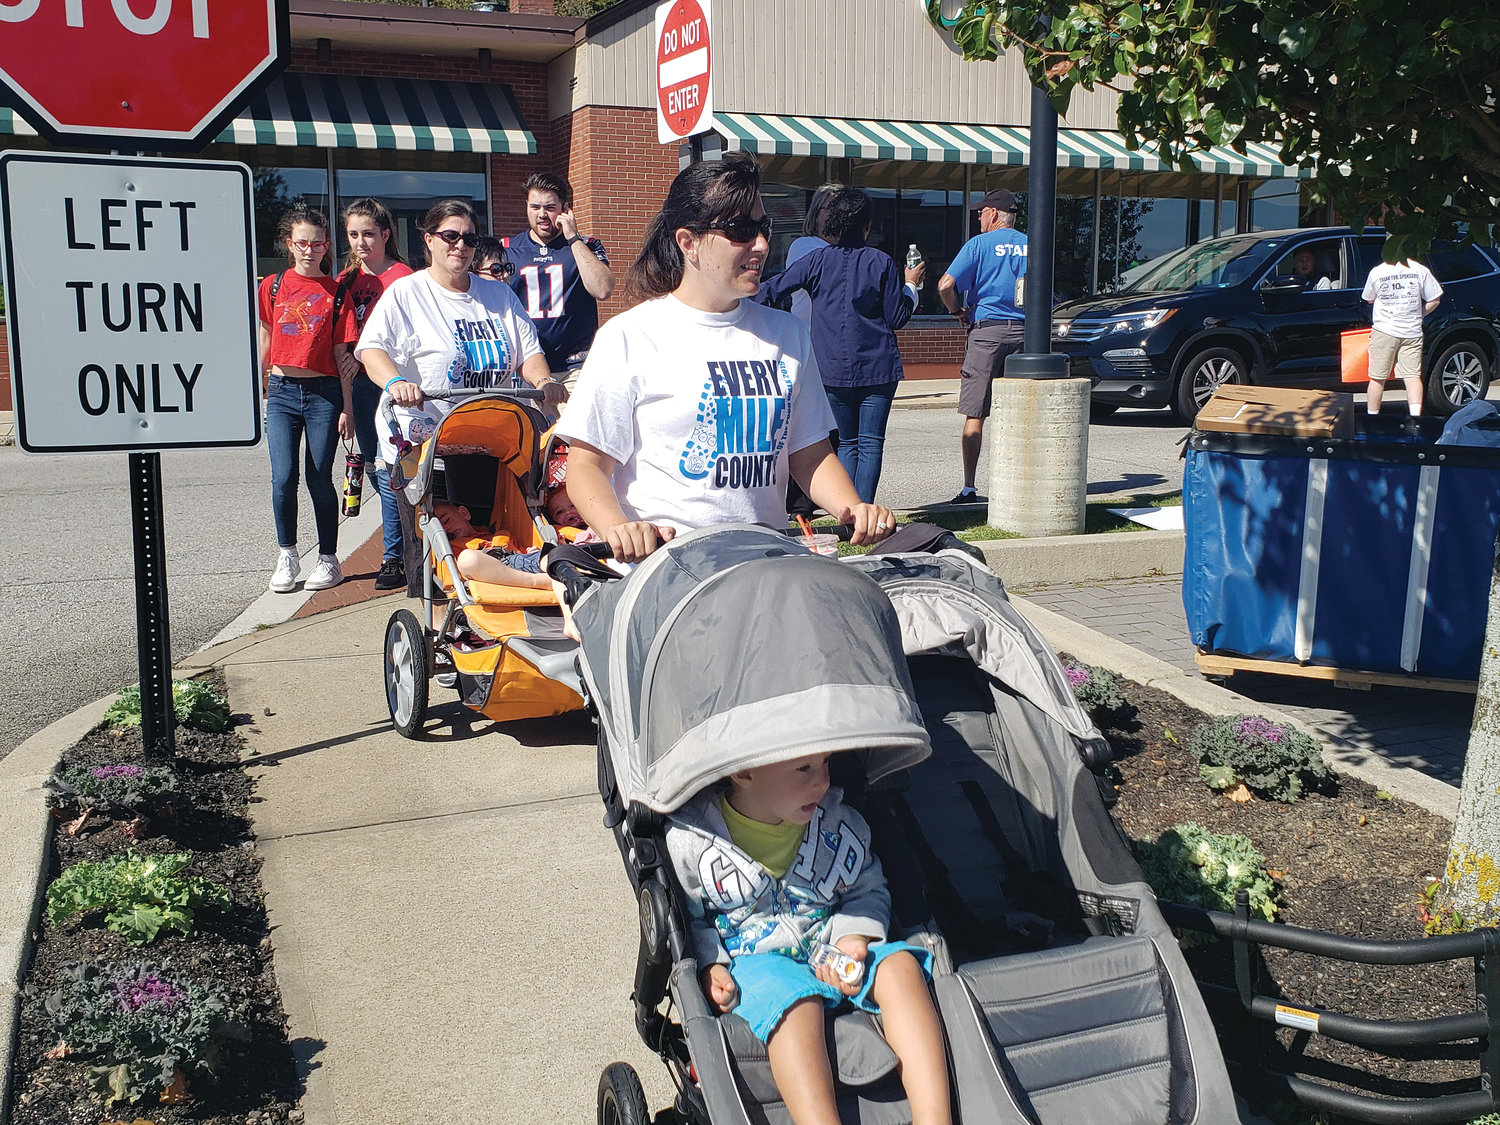 Hundreds gathered for the 12th annual St. Vincent de Paul Friends of the Poor Walk on Sept. 29 in Garden City Center, Cranston. Funds raised from the walk help to provide food, clothing, medicine, housing assistance, transportation and utility costs, job training and placement, and disaster relief to those in need.